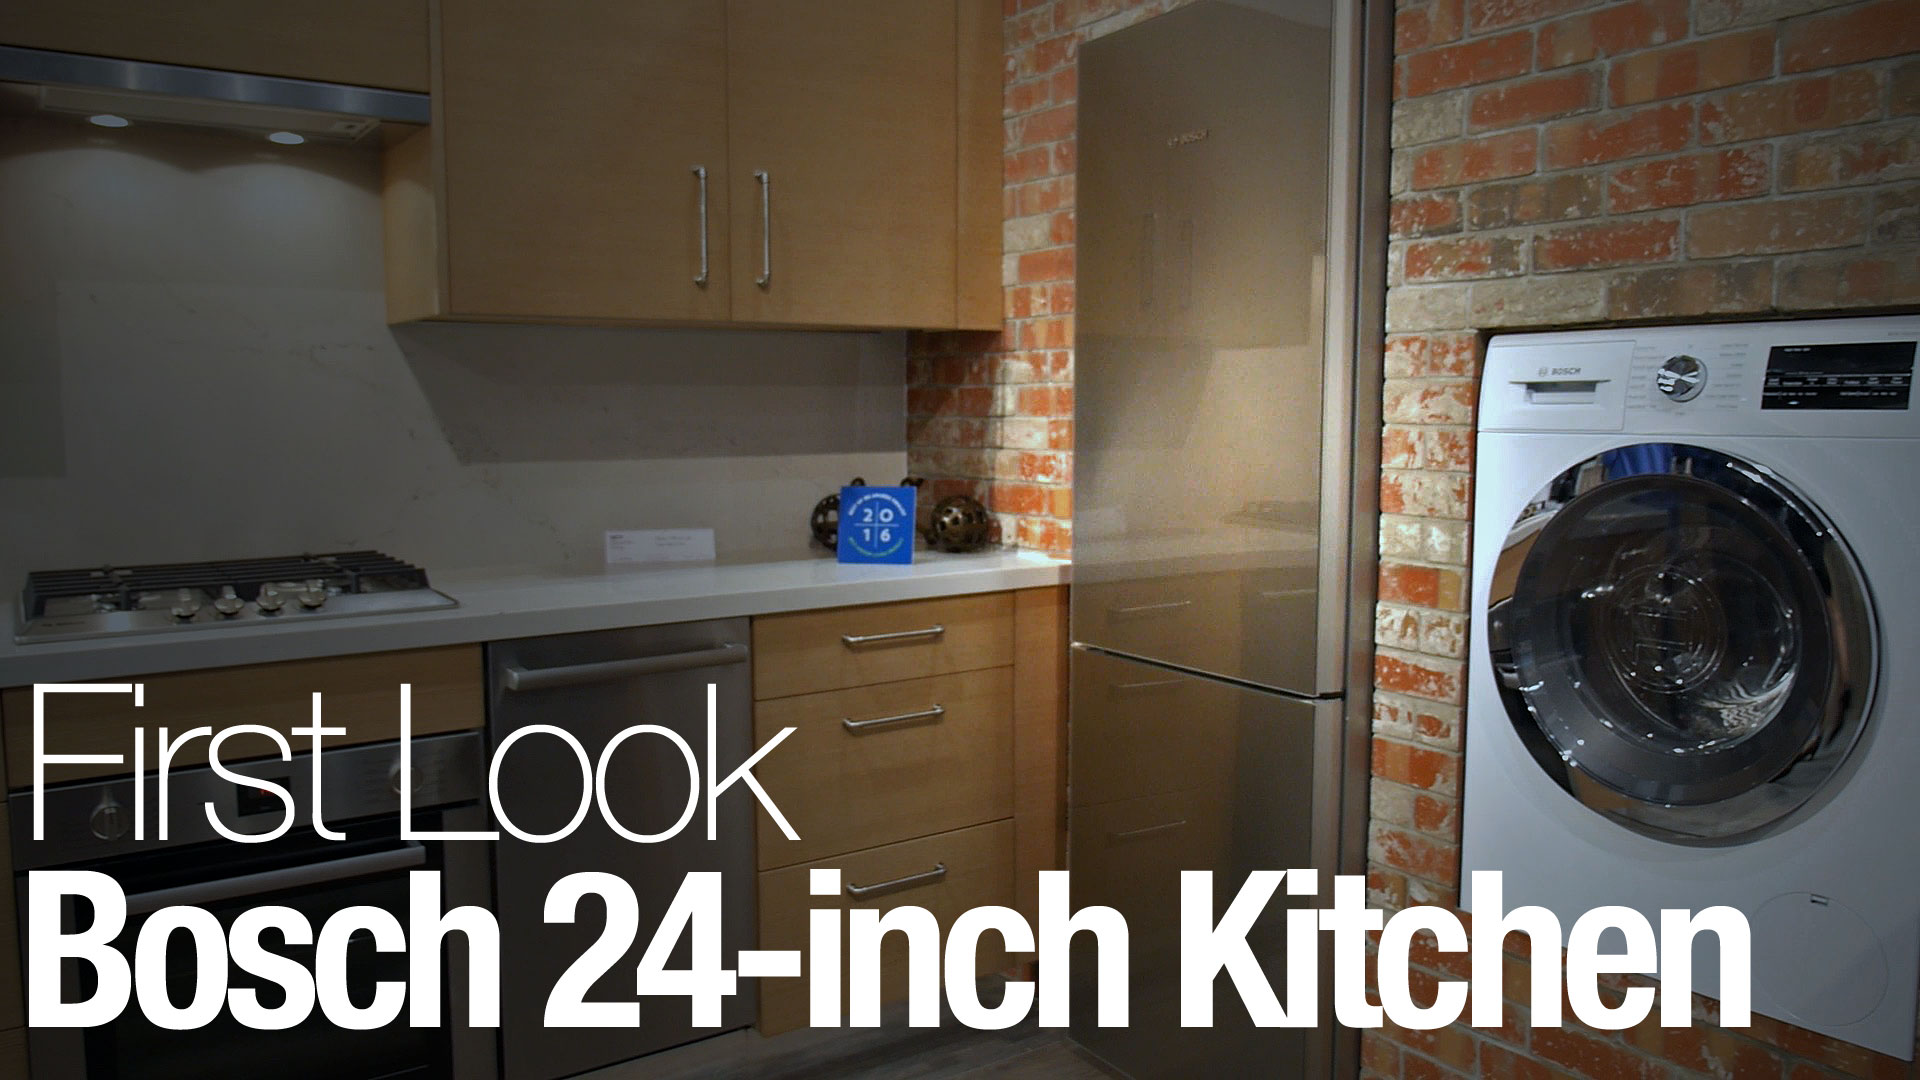 Bosch Small Kitchen Appliances Video Bosch Fits Seven Appliances Into One Tiny Kitchen